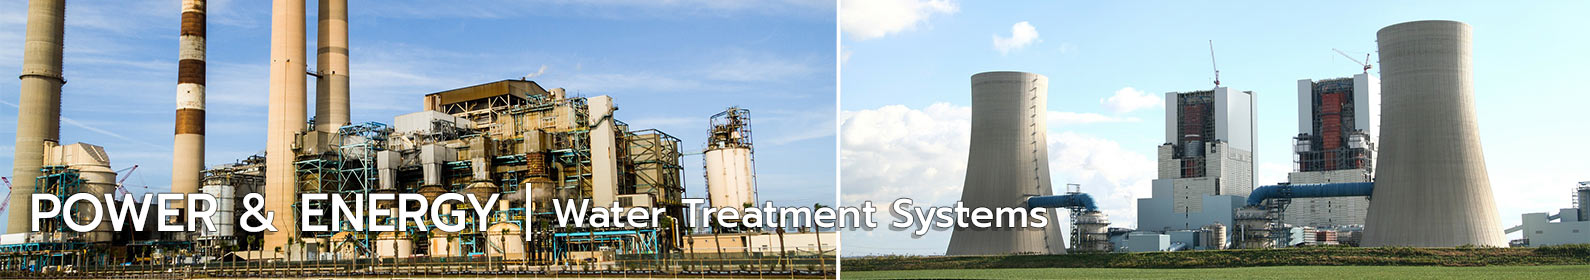 water treatment systems for power energy industry